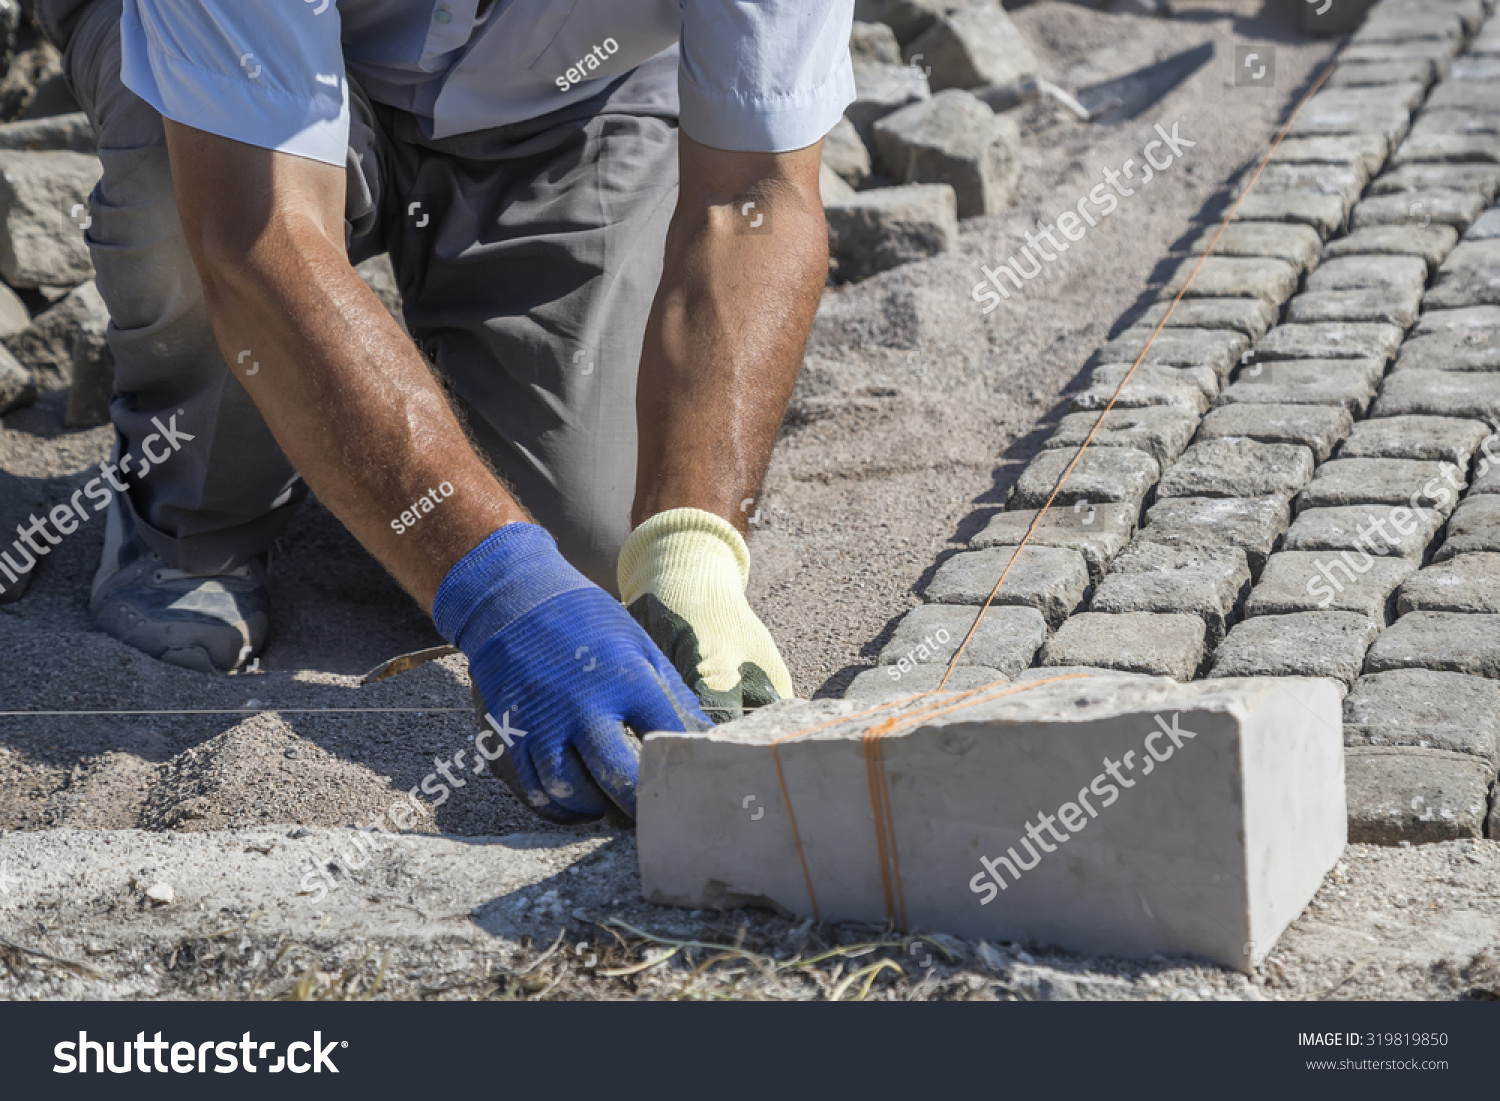 Laying Natural Stone : Worker installing granite cubes for pathway laying